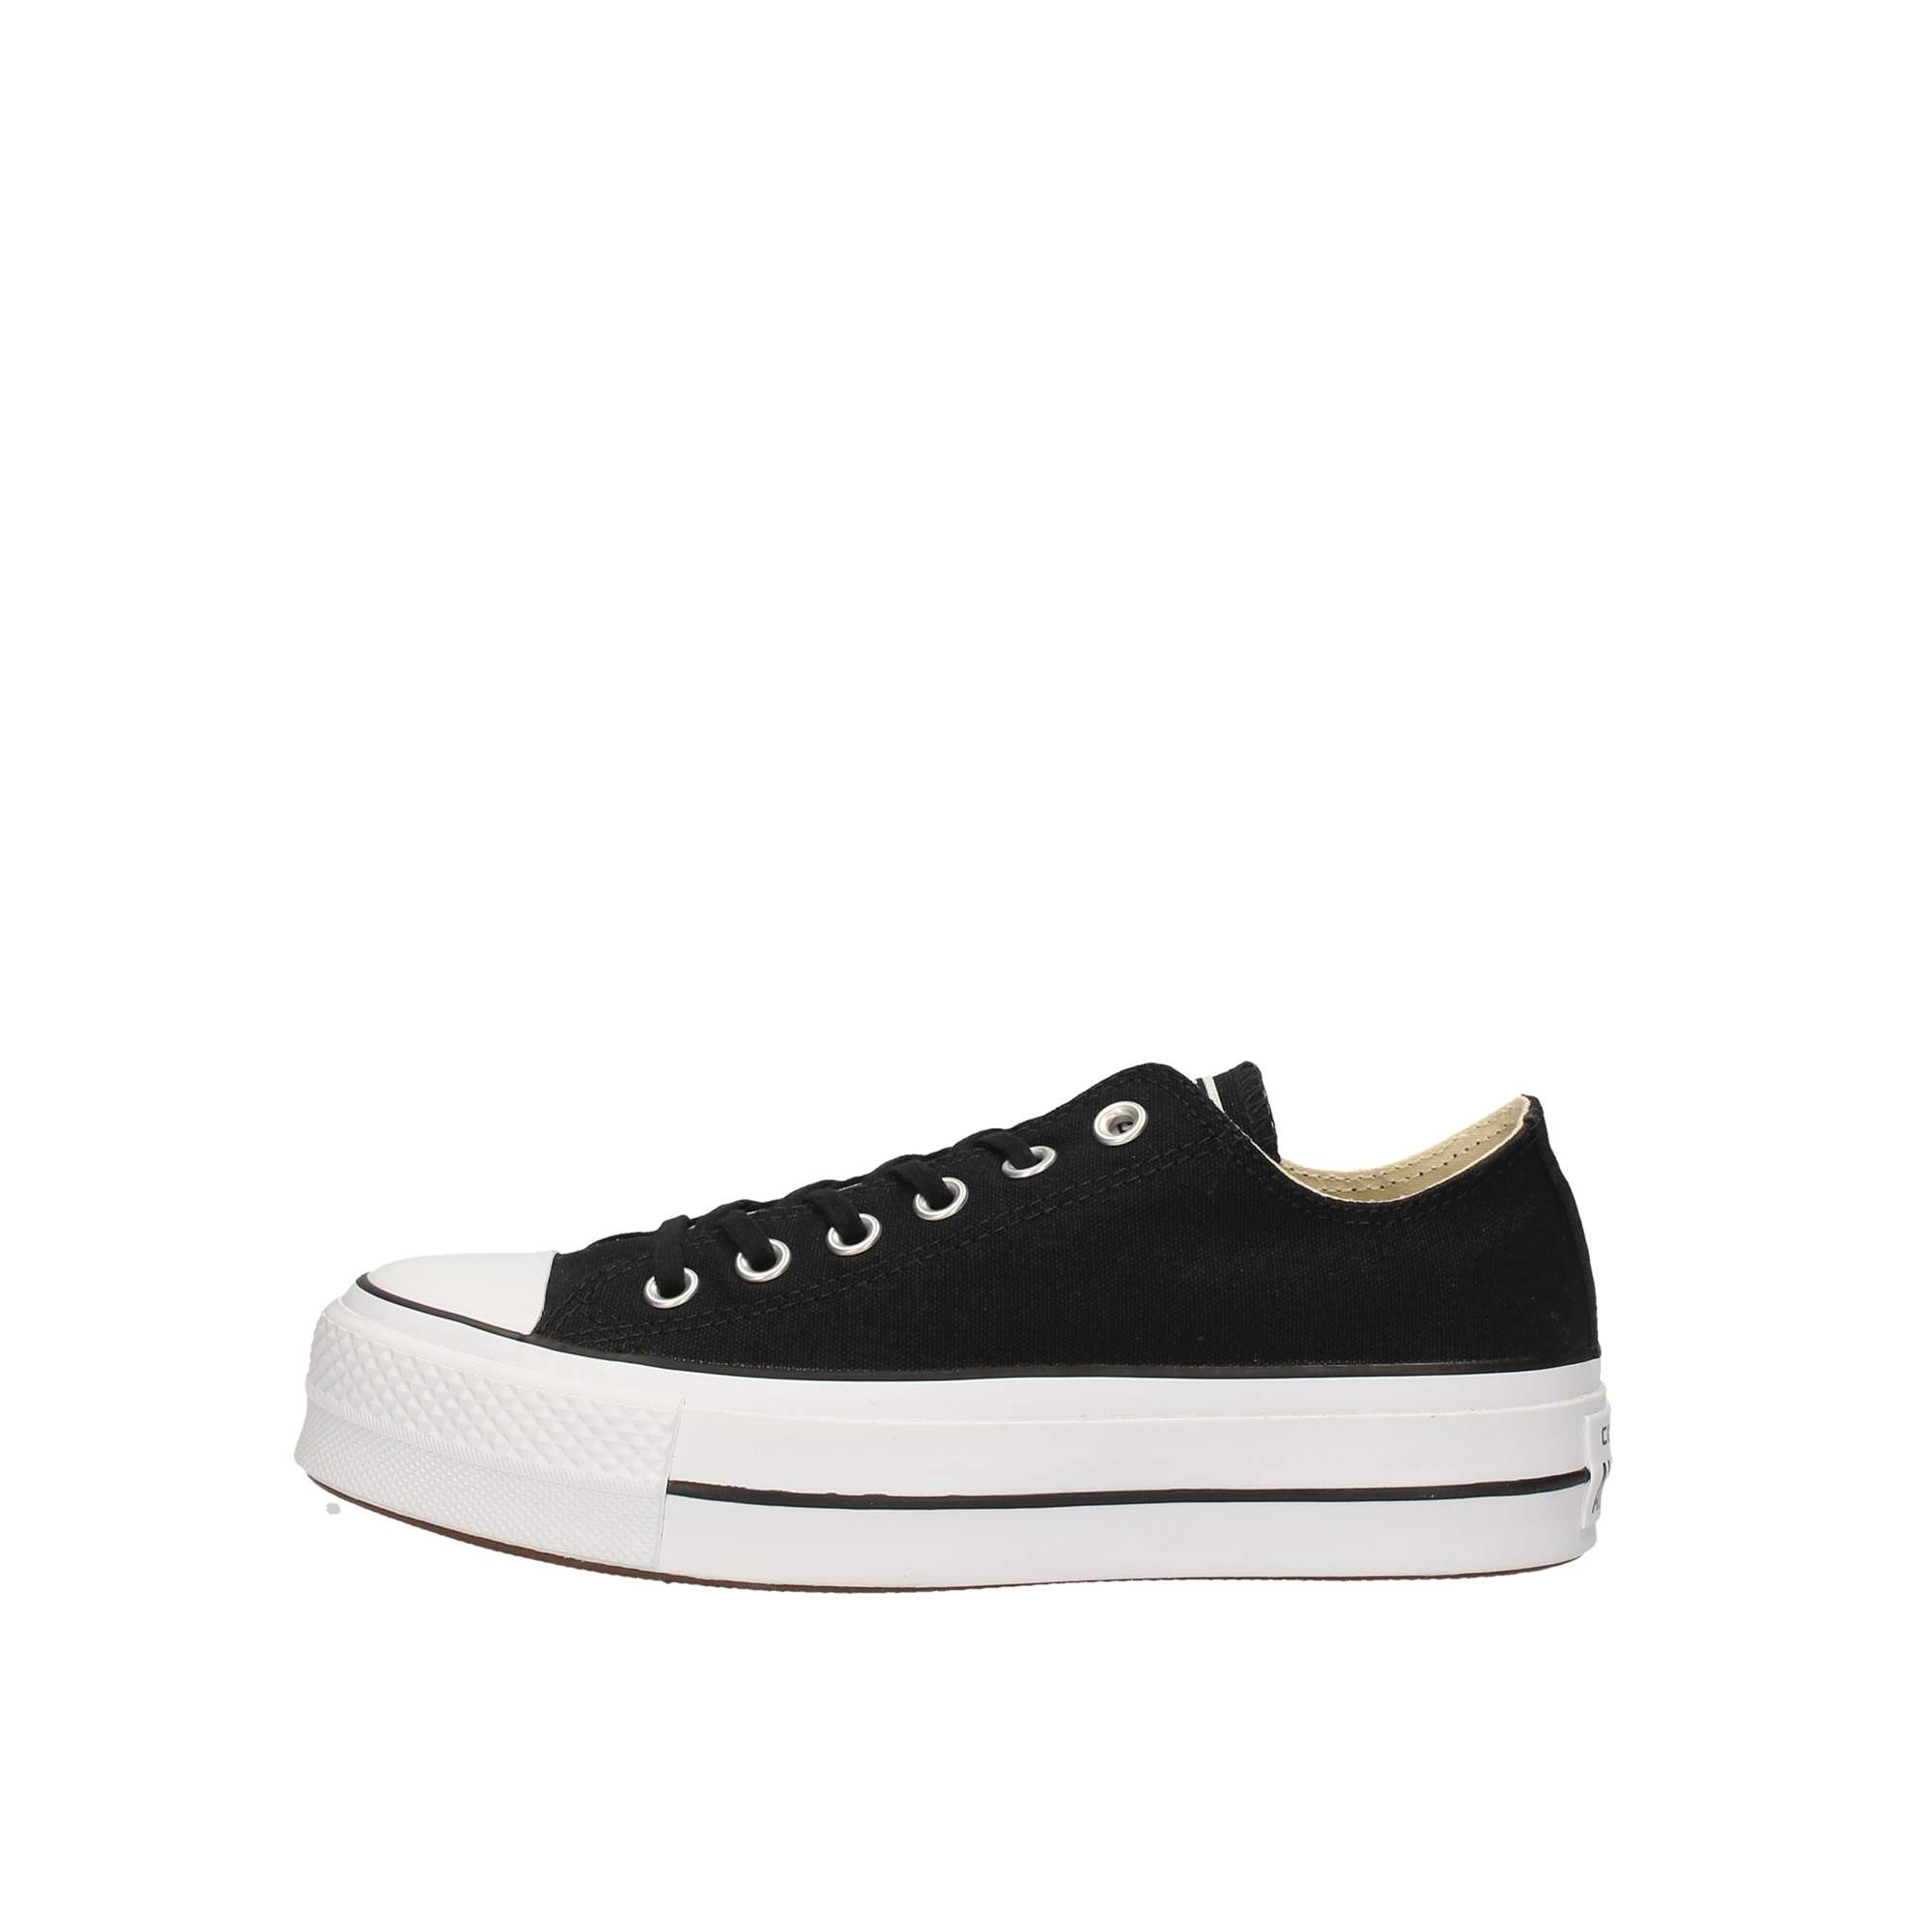 Alta qualit SNEAKERS Donna CONVERSE 560250C Primavera/Estate